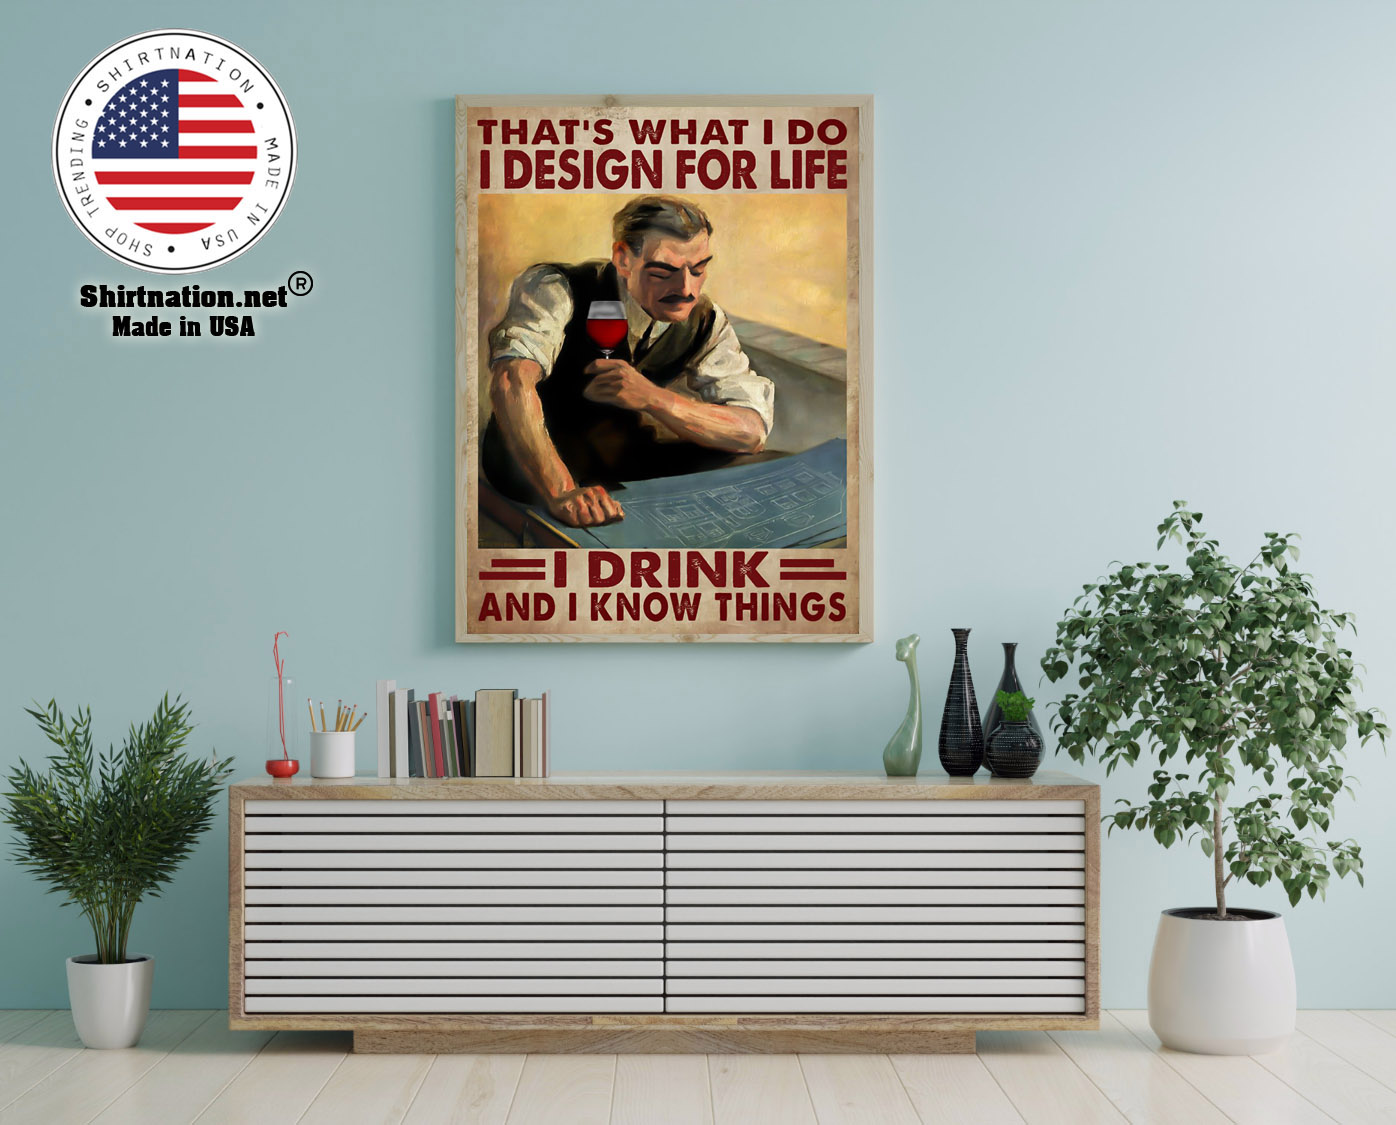 Thats what I do I design for life I drink and I know things poster 12